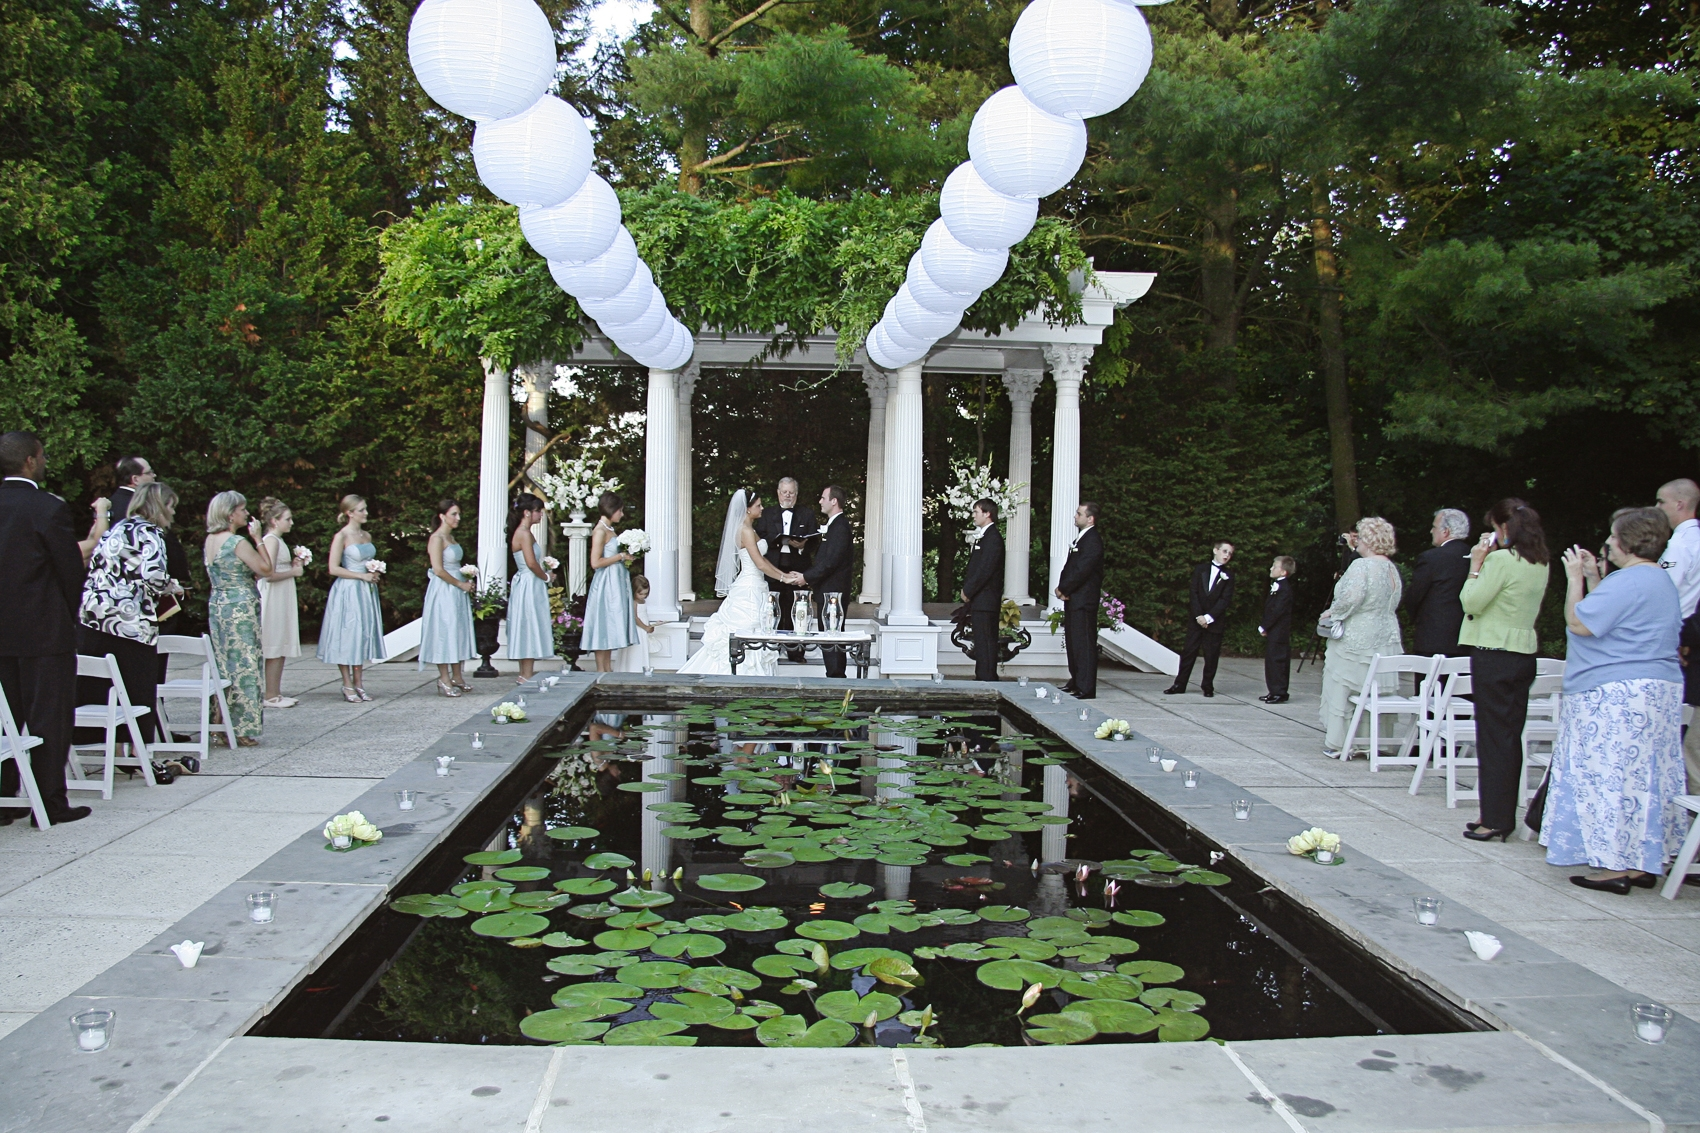 Outdoor Courtyard Ceremony Venue With Lily Pads And White Lanterns